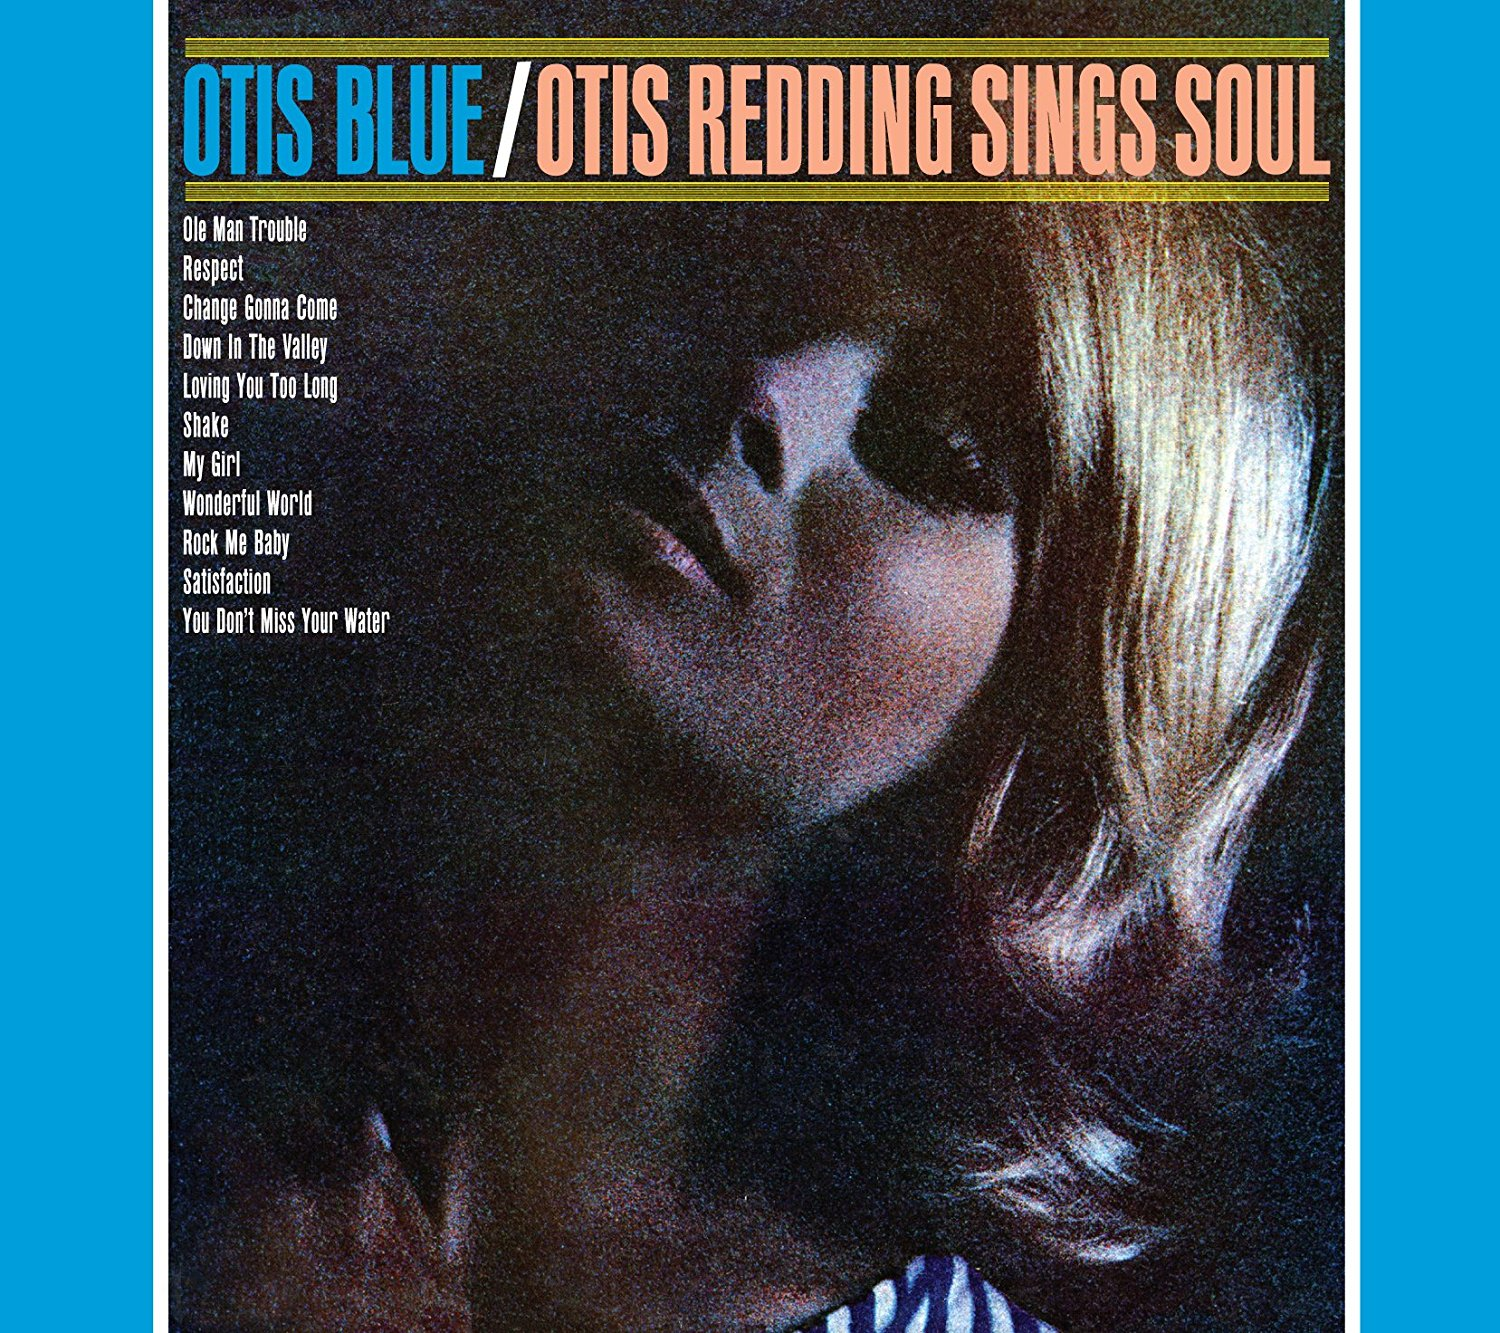 『Otis Blue』('65)/Otis Redding